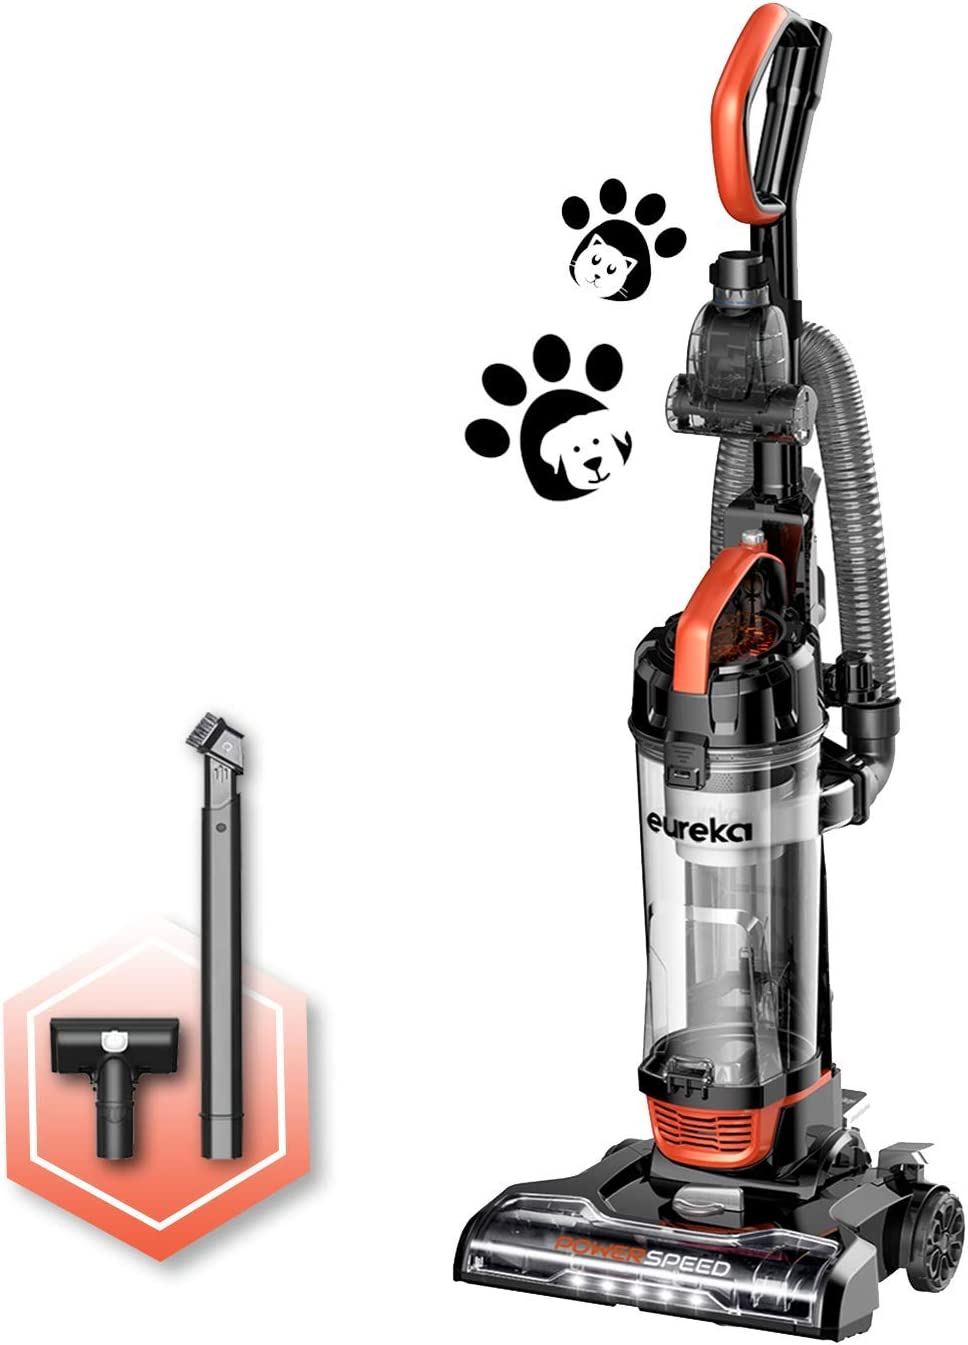 Eureka Power Speed NEU188A PowerSpeed Turbo Spotlight Lightweight Upright Vacuum Cleaner for Carpet and Hard Floor, Pet, Tangerine Orange